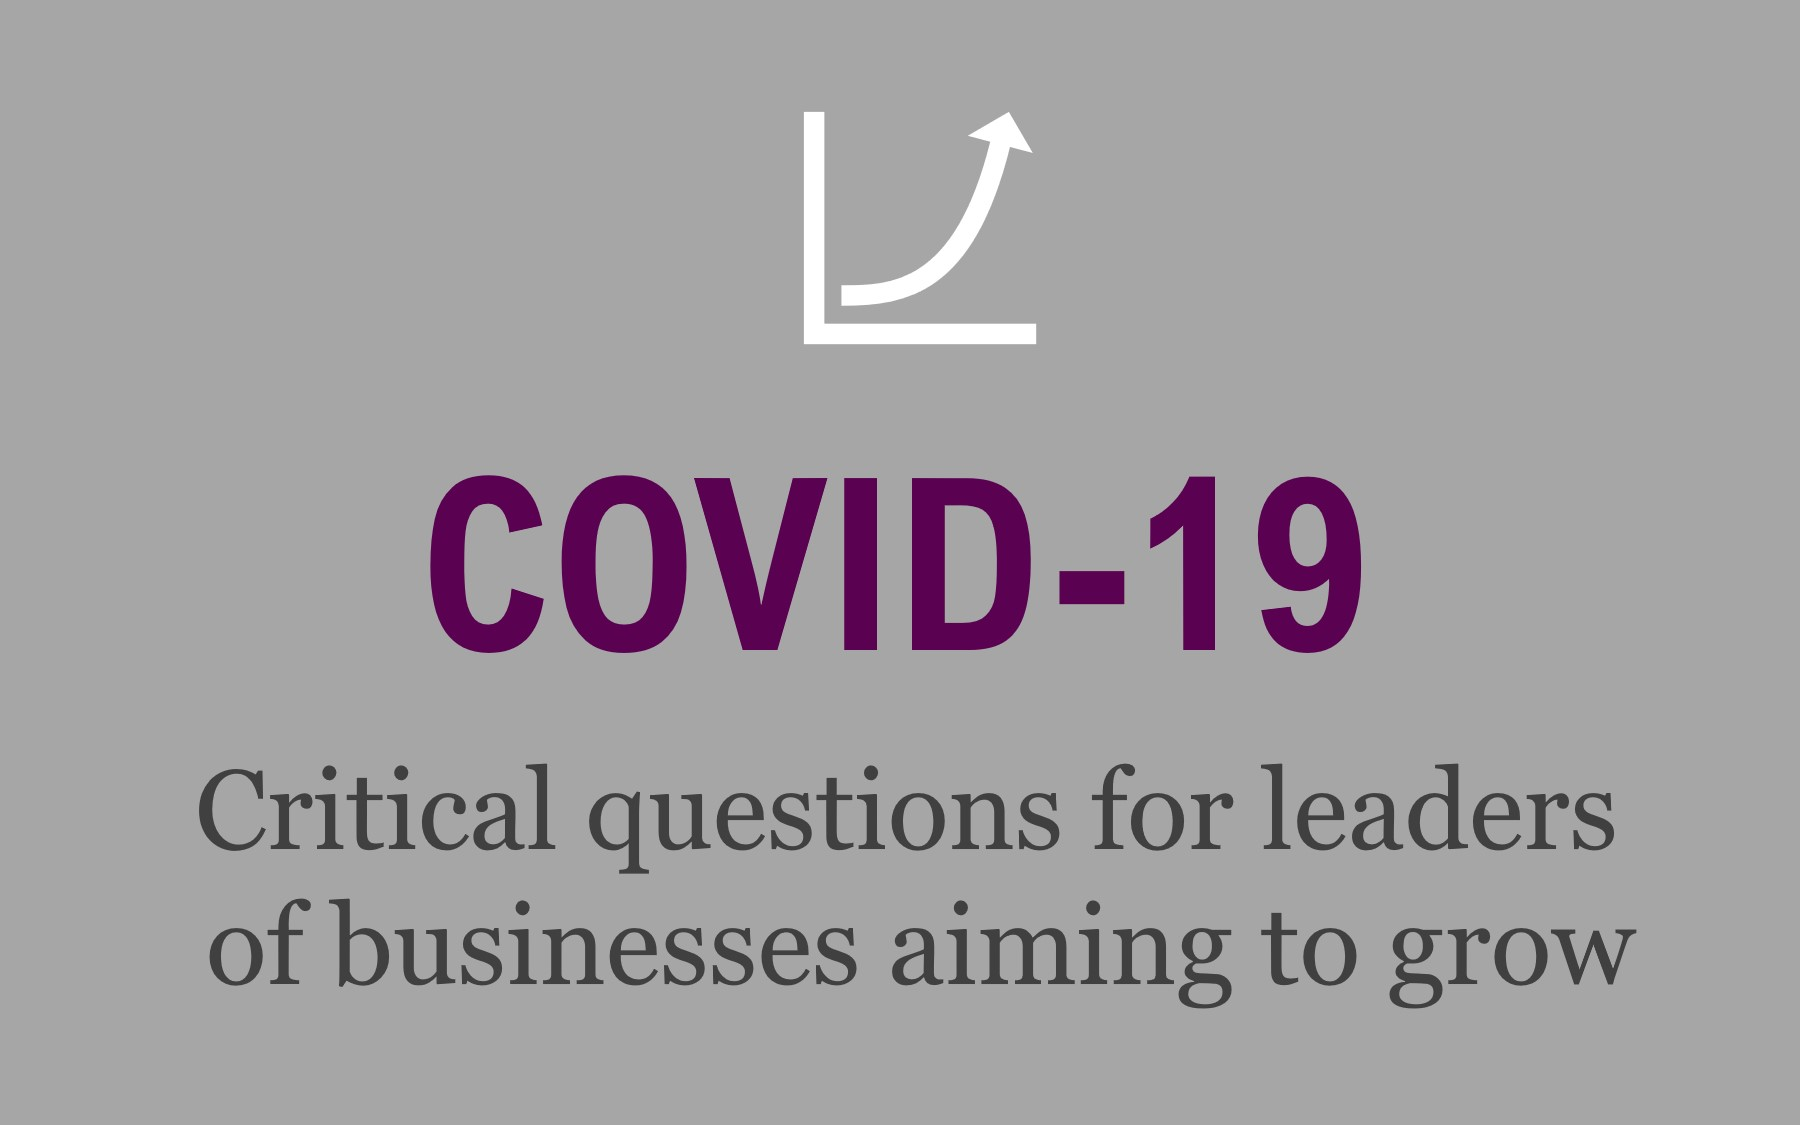 Critical questions for leaders of businesses aiming to grow out of the coronavirus crisis